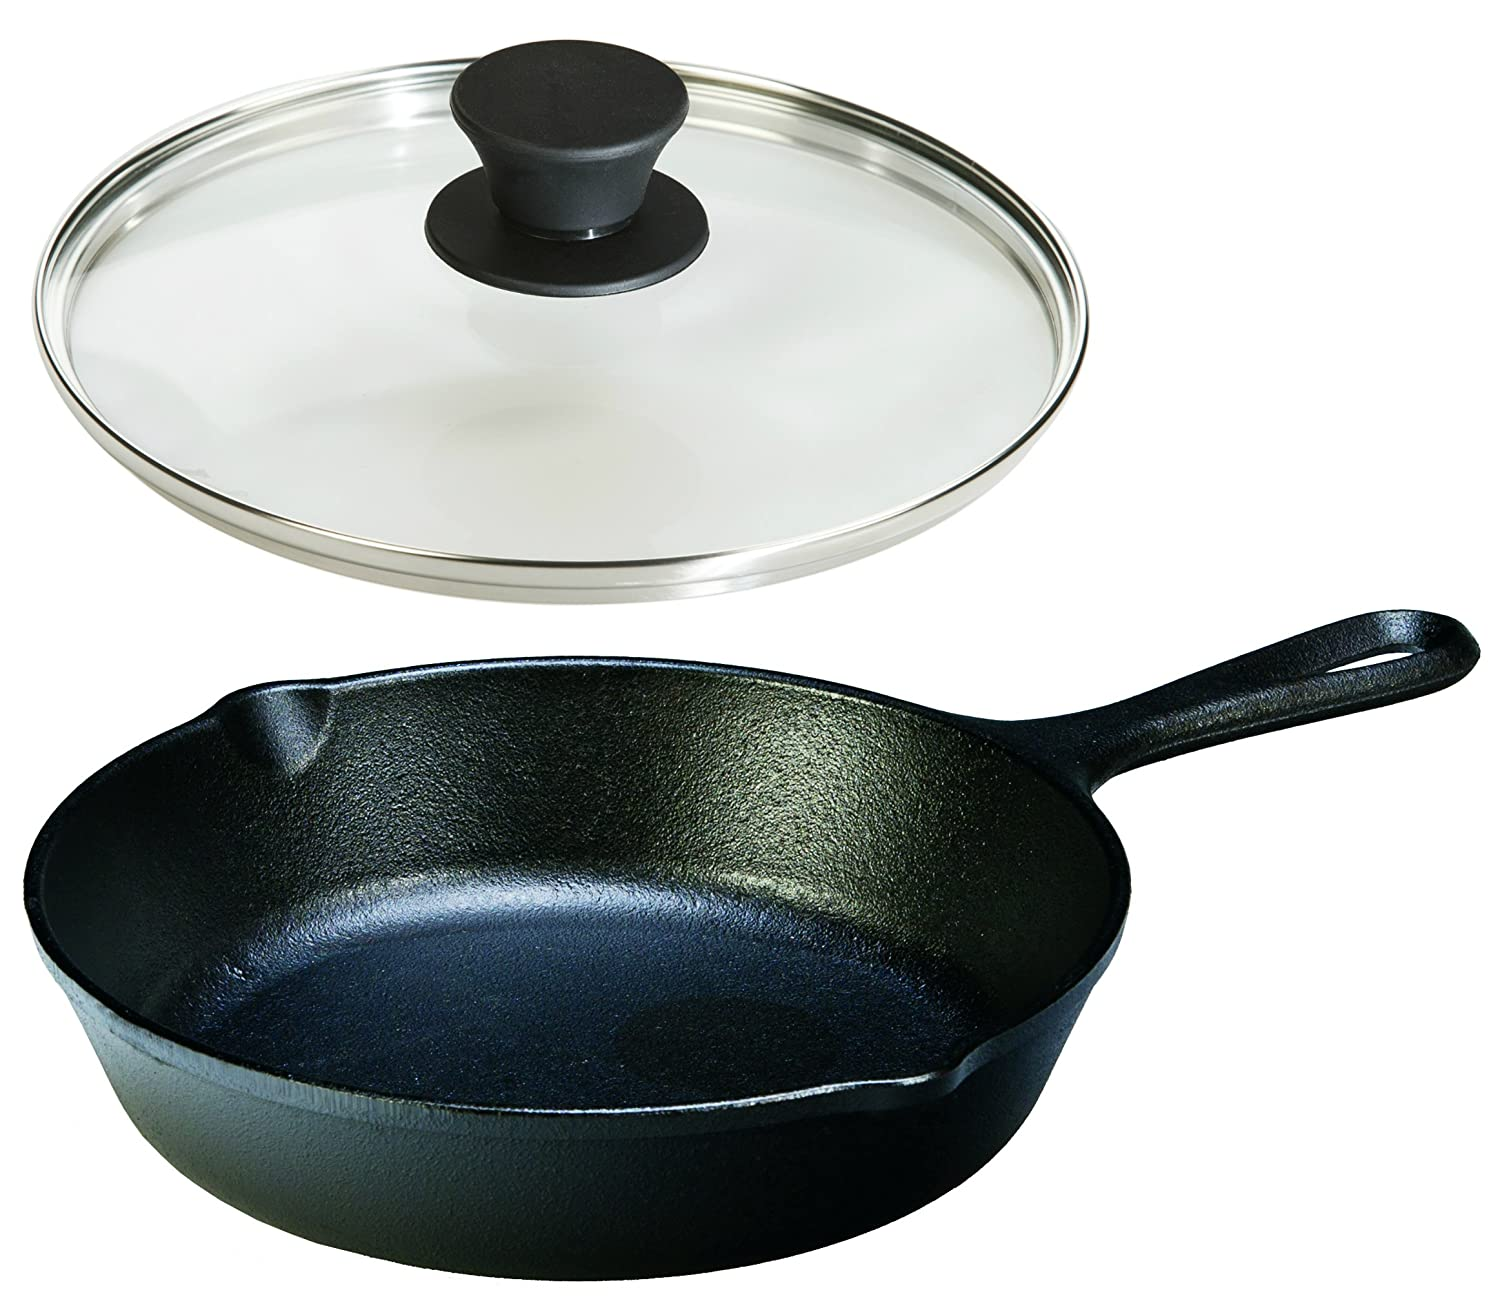 Lodge Seasoned Cast Iron Skillet with Tempered Glass Lid (8 Inch) - Cast Iron Frying Pan with Lid Set